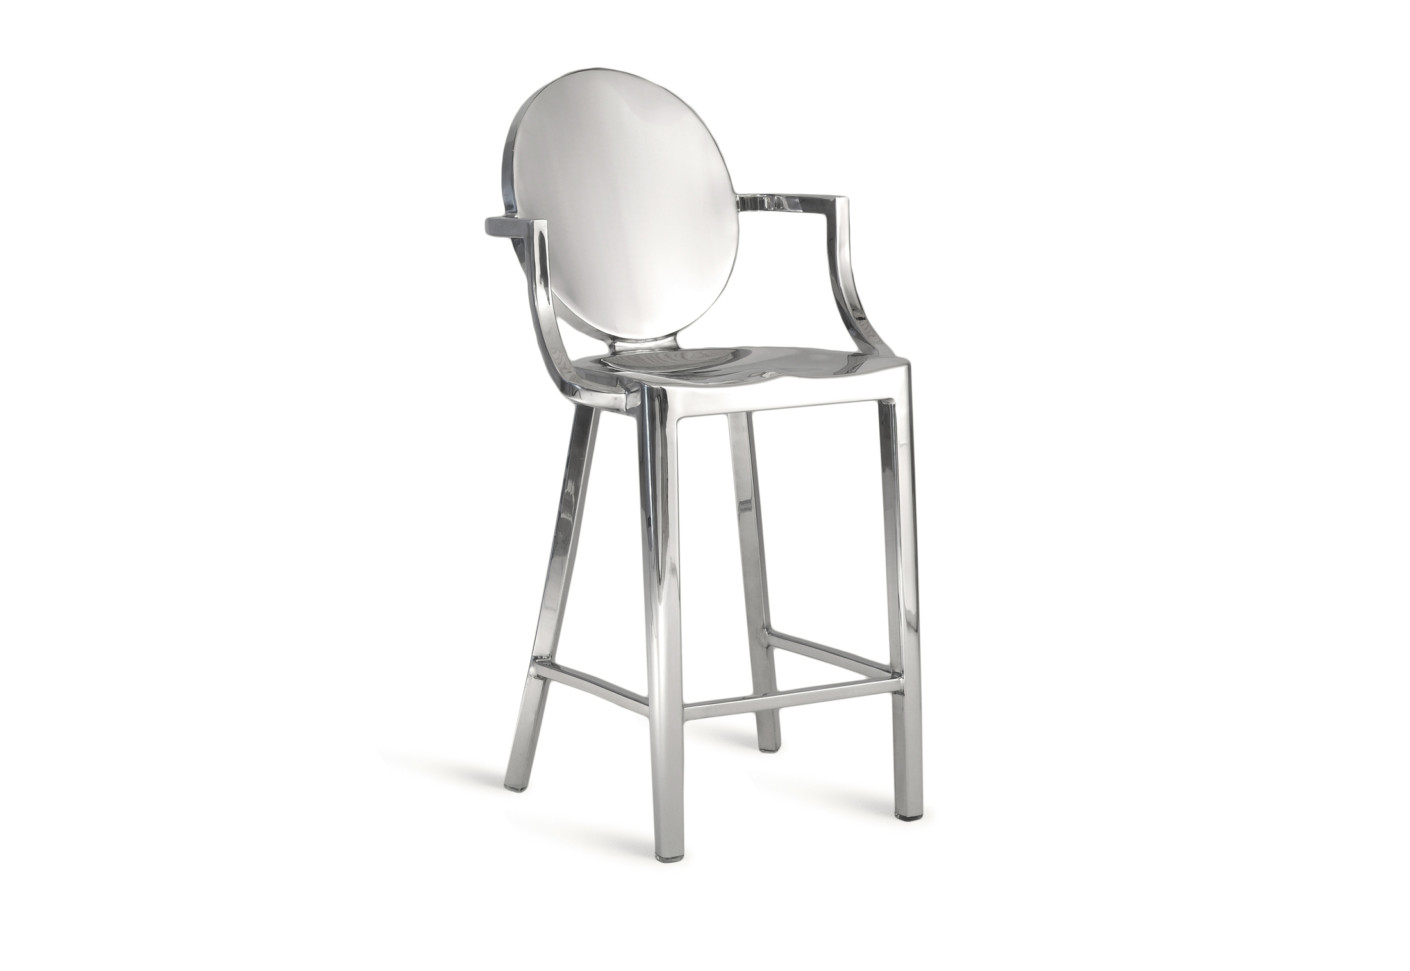 Kong Counter Stool With Armrests By Emeco Stylepark